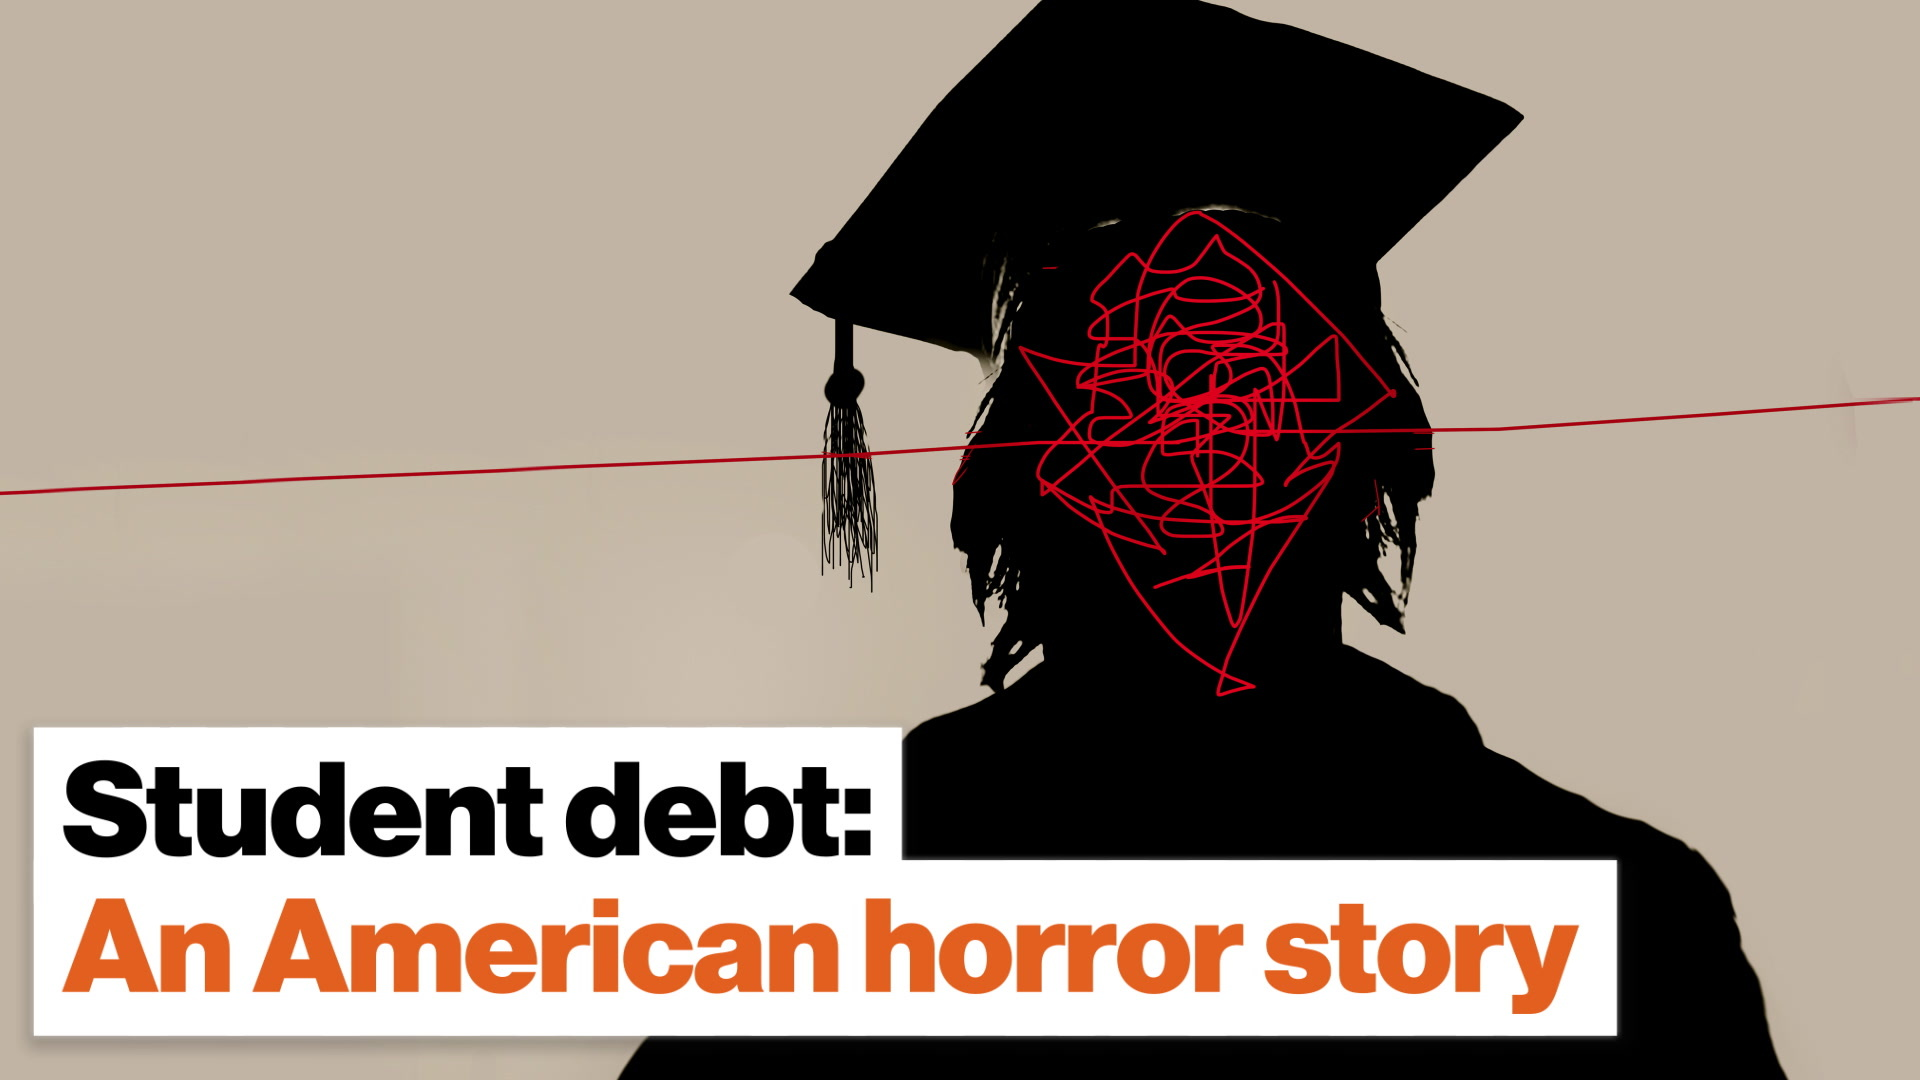 Student debt: An American horror story